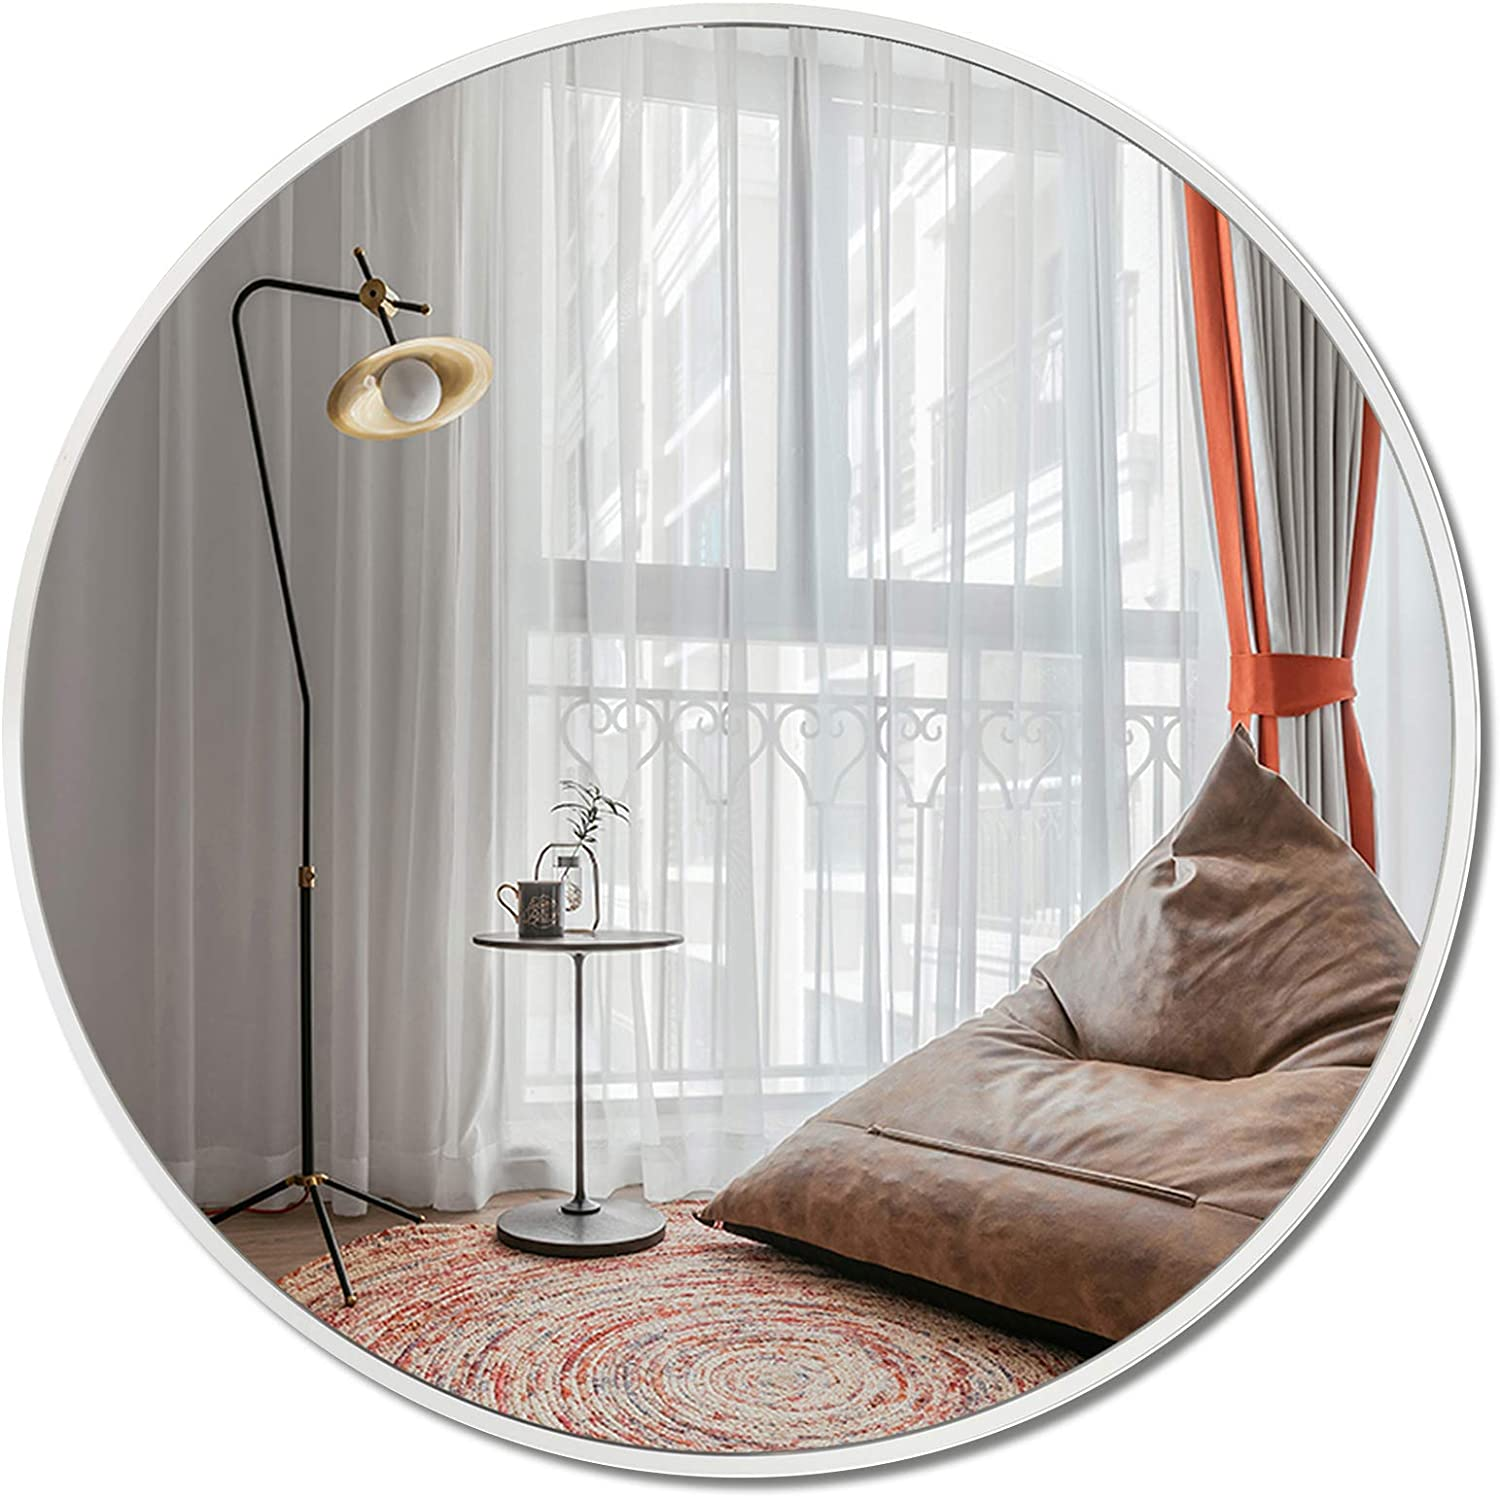 LRGLASS 36 Inches Round Mirror, Large Chrome Wall-Mounted, Circle Metal Framed Mirror, Hanging Modern Decor for Bathroom, Living Room, Entryway and Dressing Room